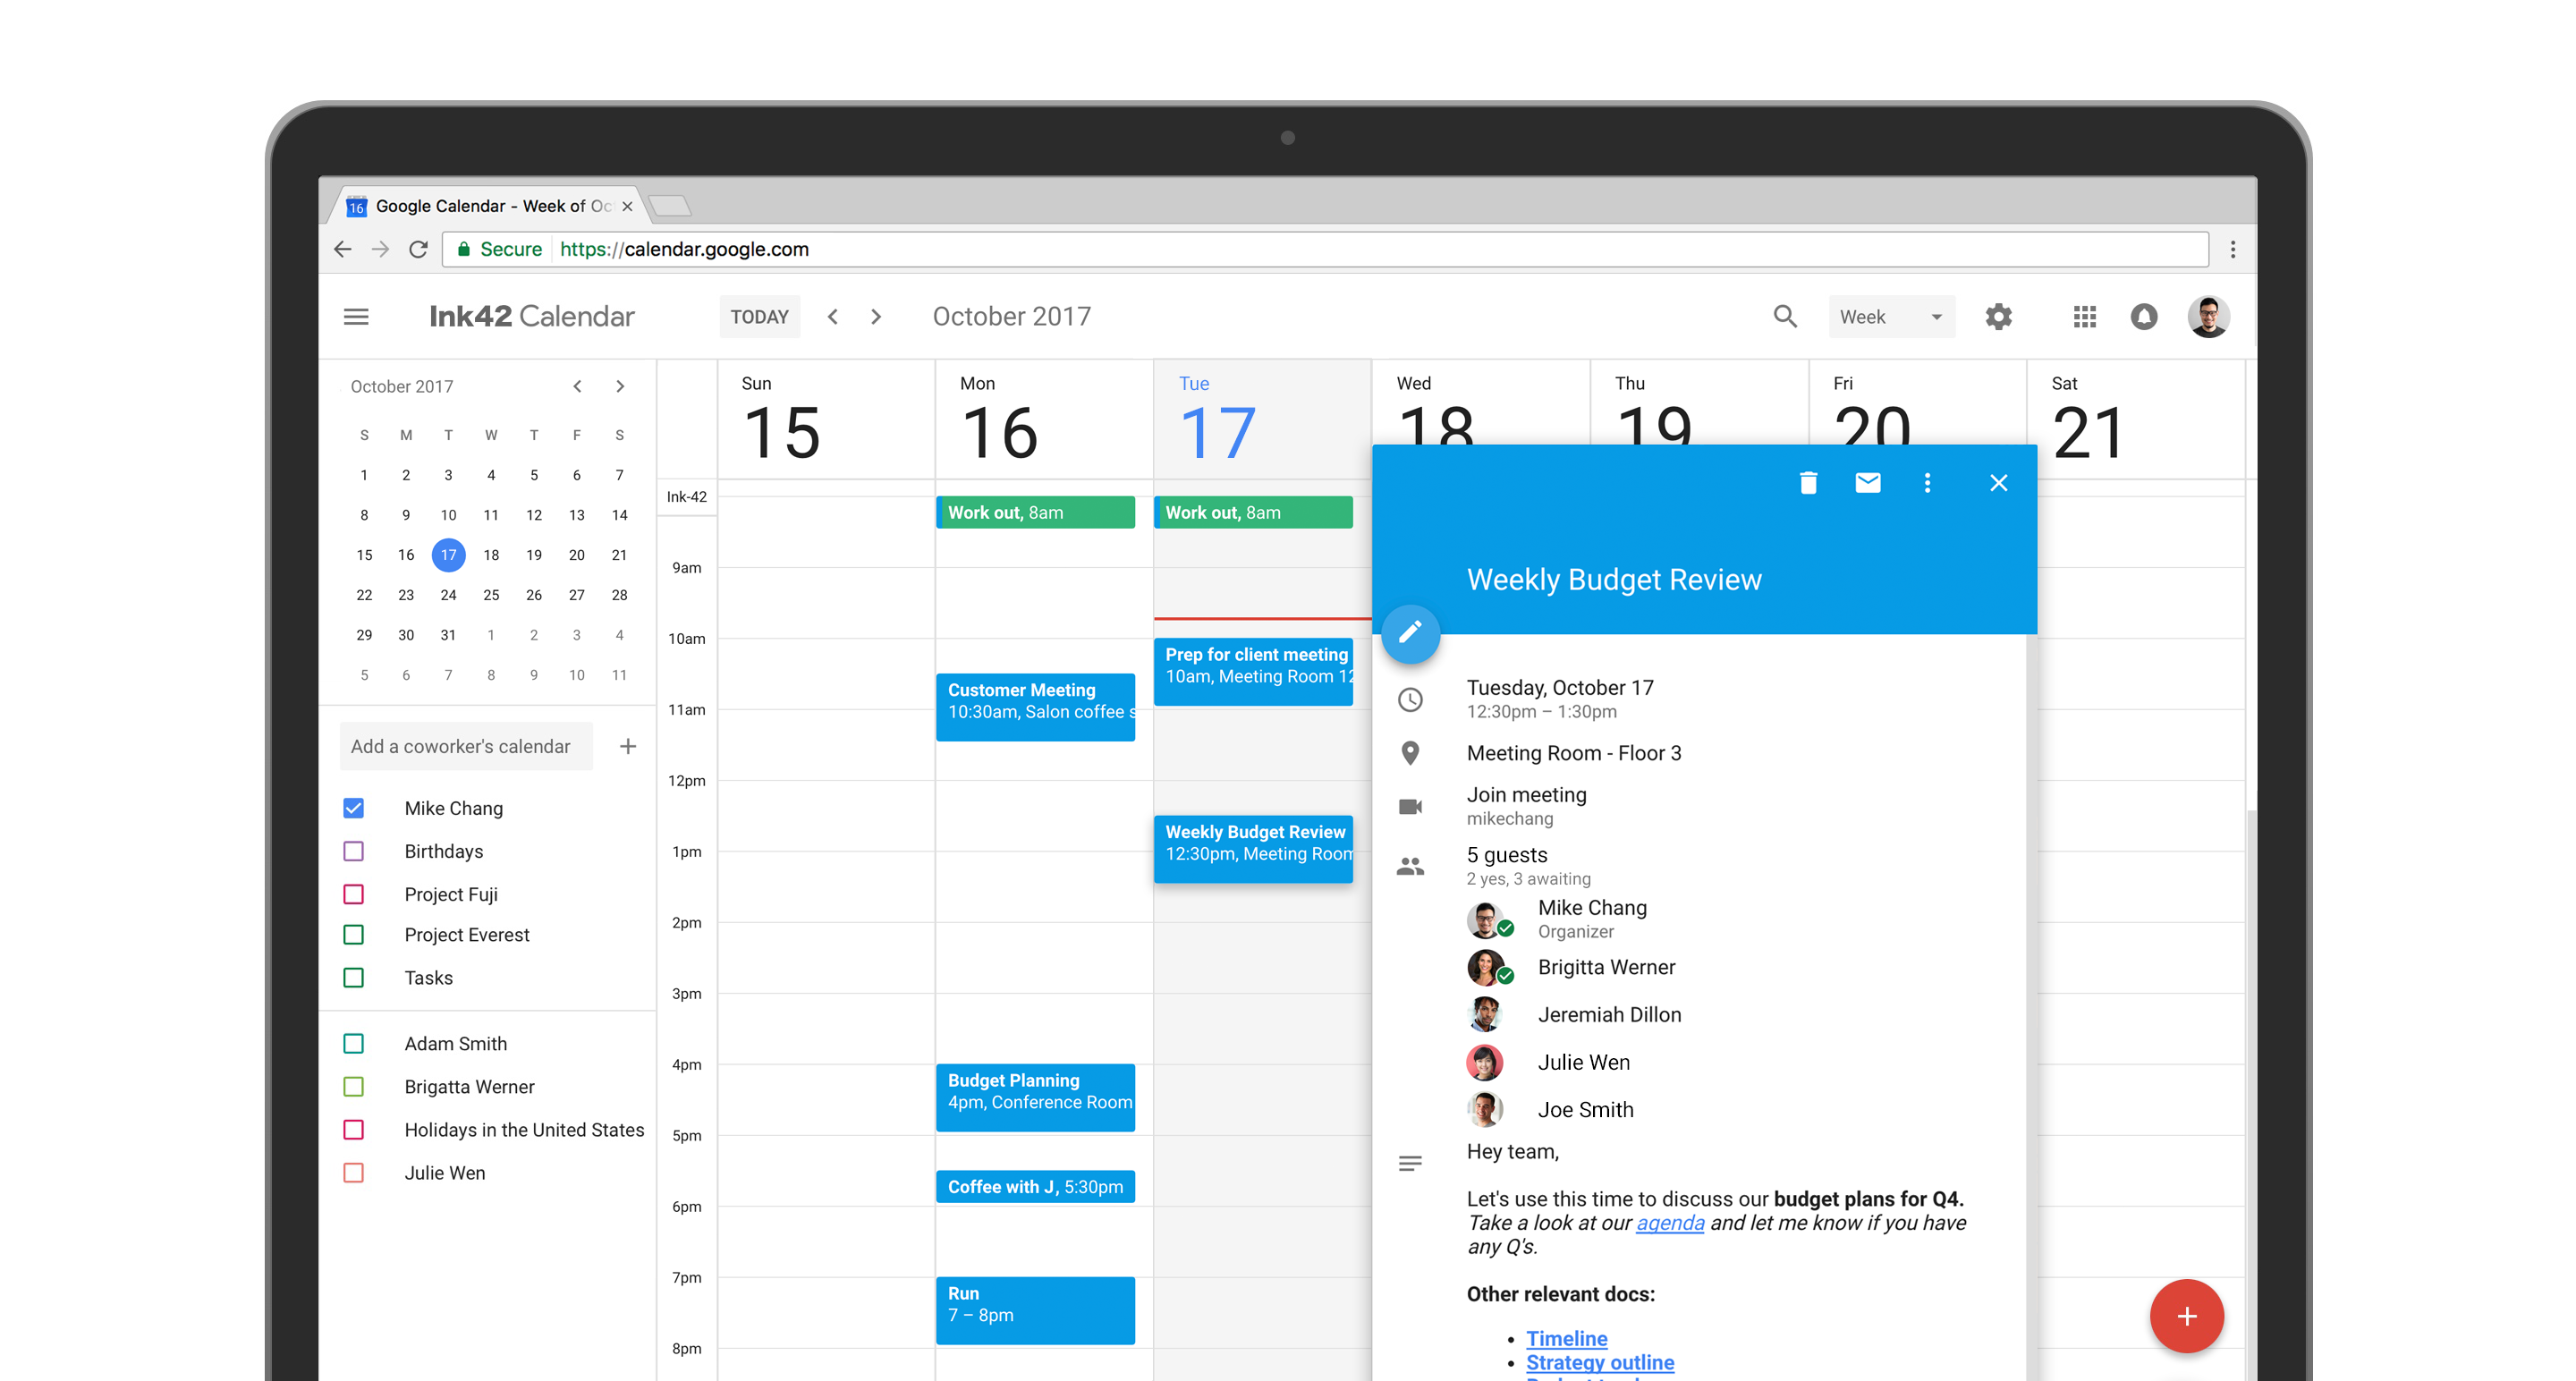 How To Get Google Calendar's New Look With The Latest Redesign